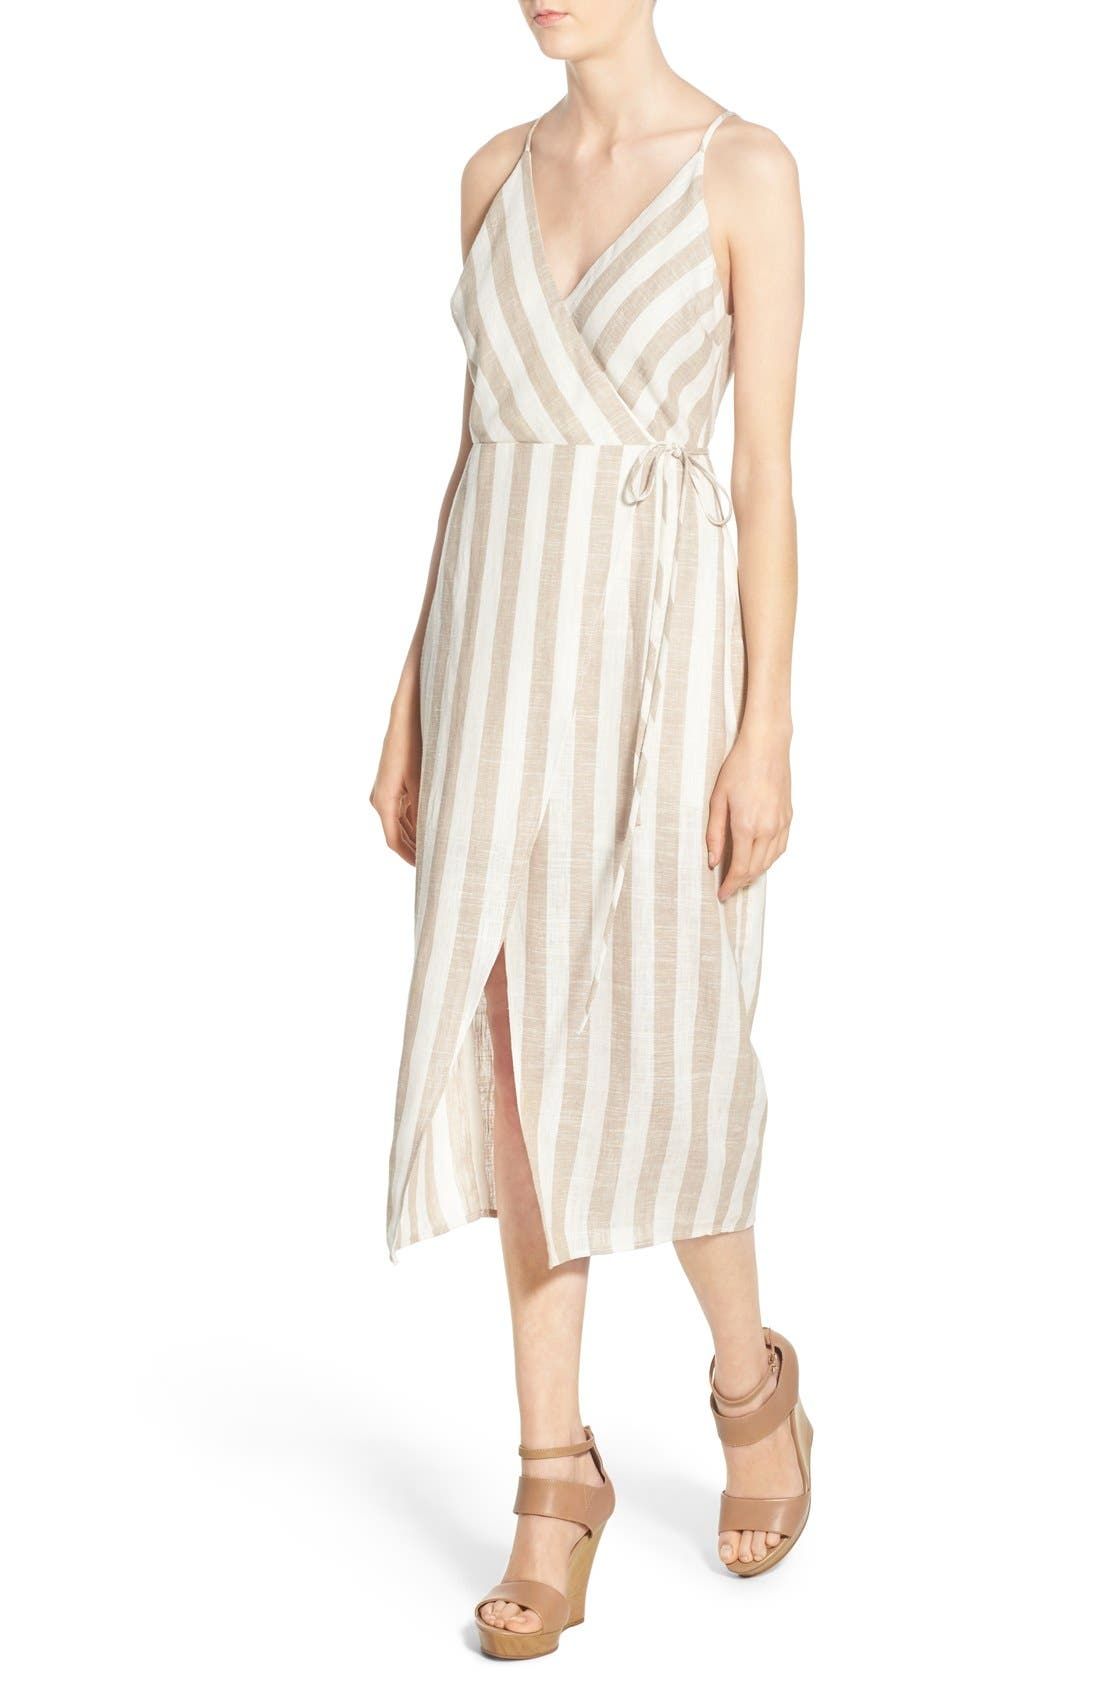 ASTR THE LABEL,                             ASTR Linen Blend Wrap Dress,                             Alternate thumbnail 5, color,                             250